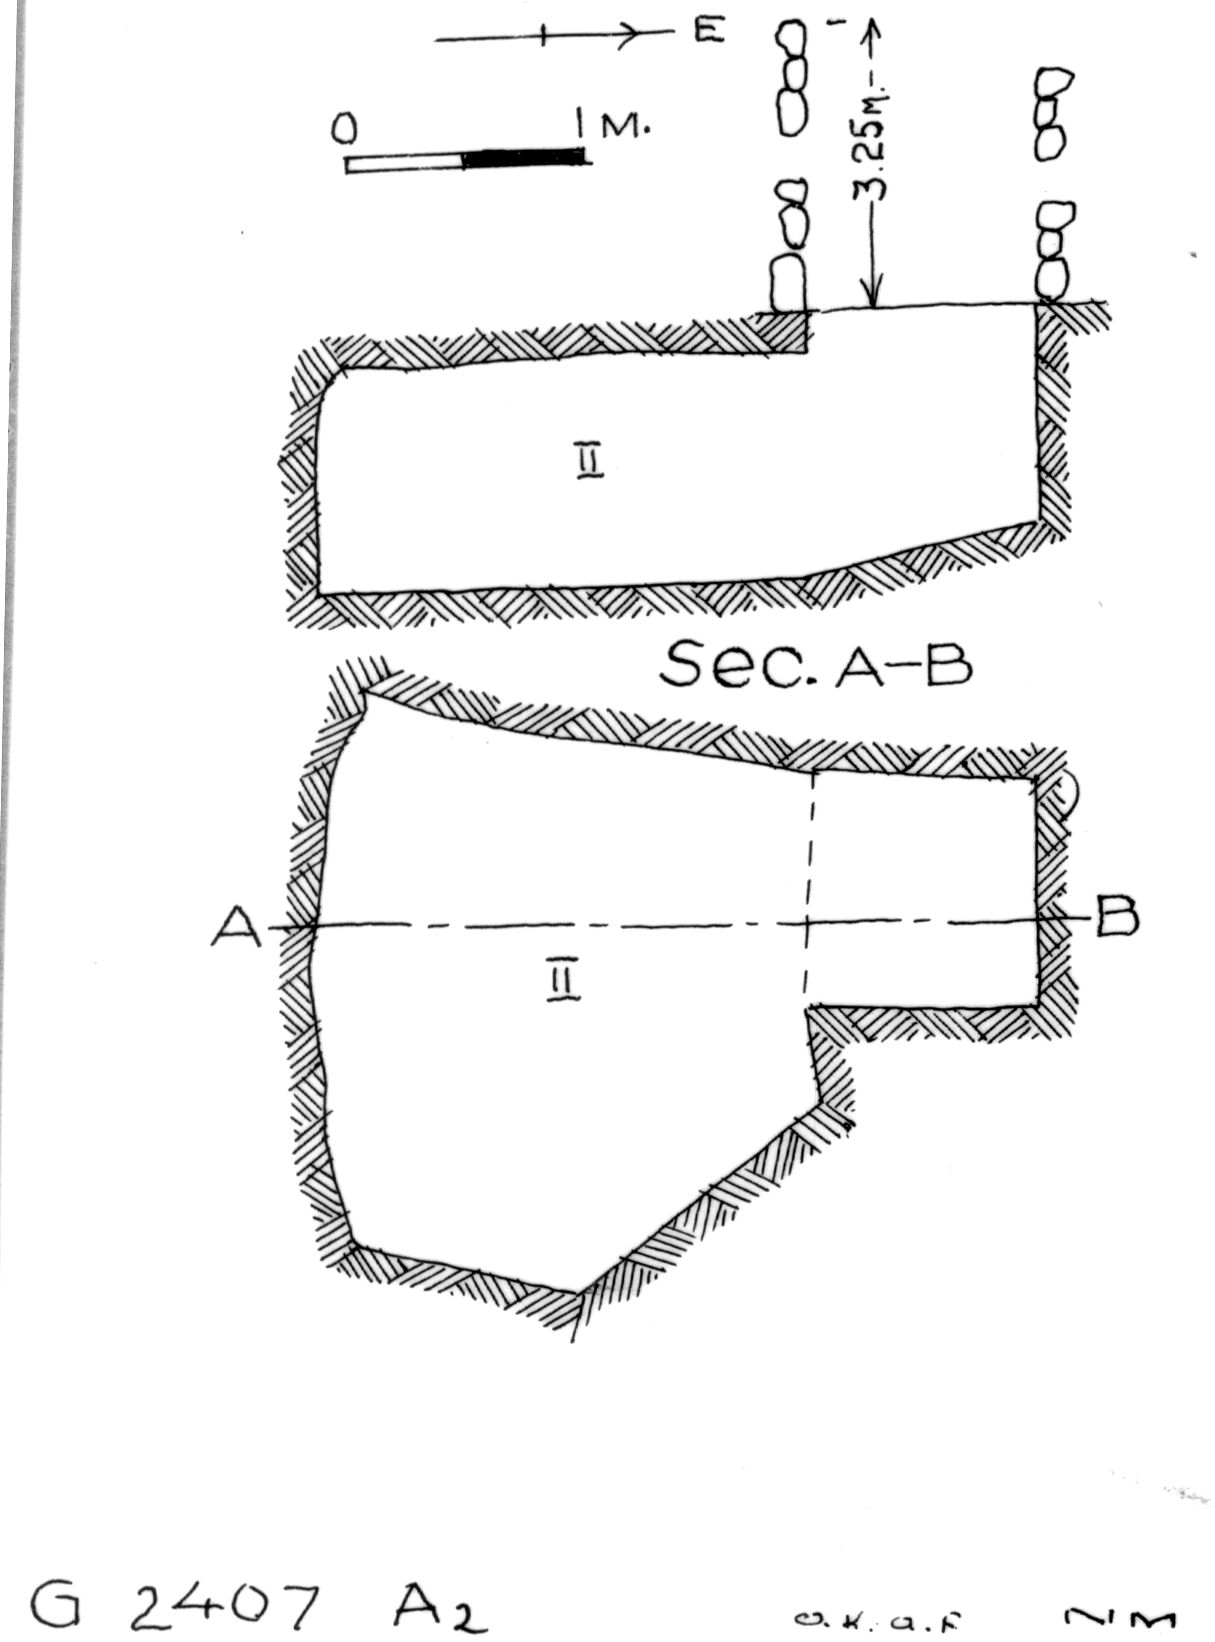 Maps and plans: G 2407, Shaft A2